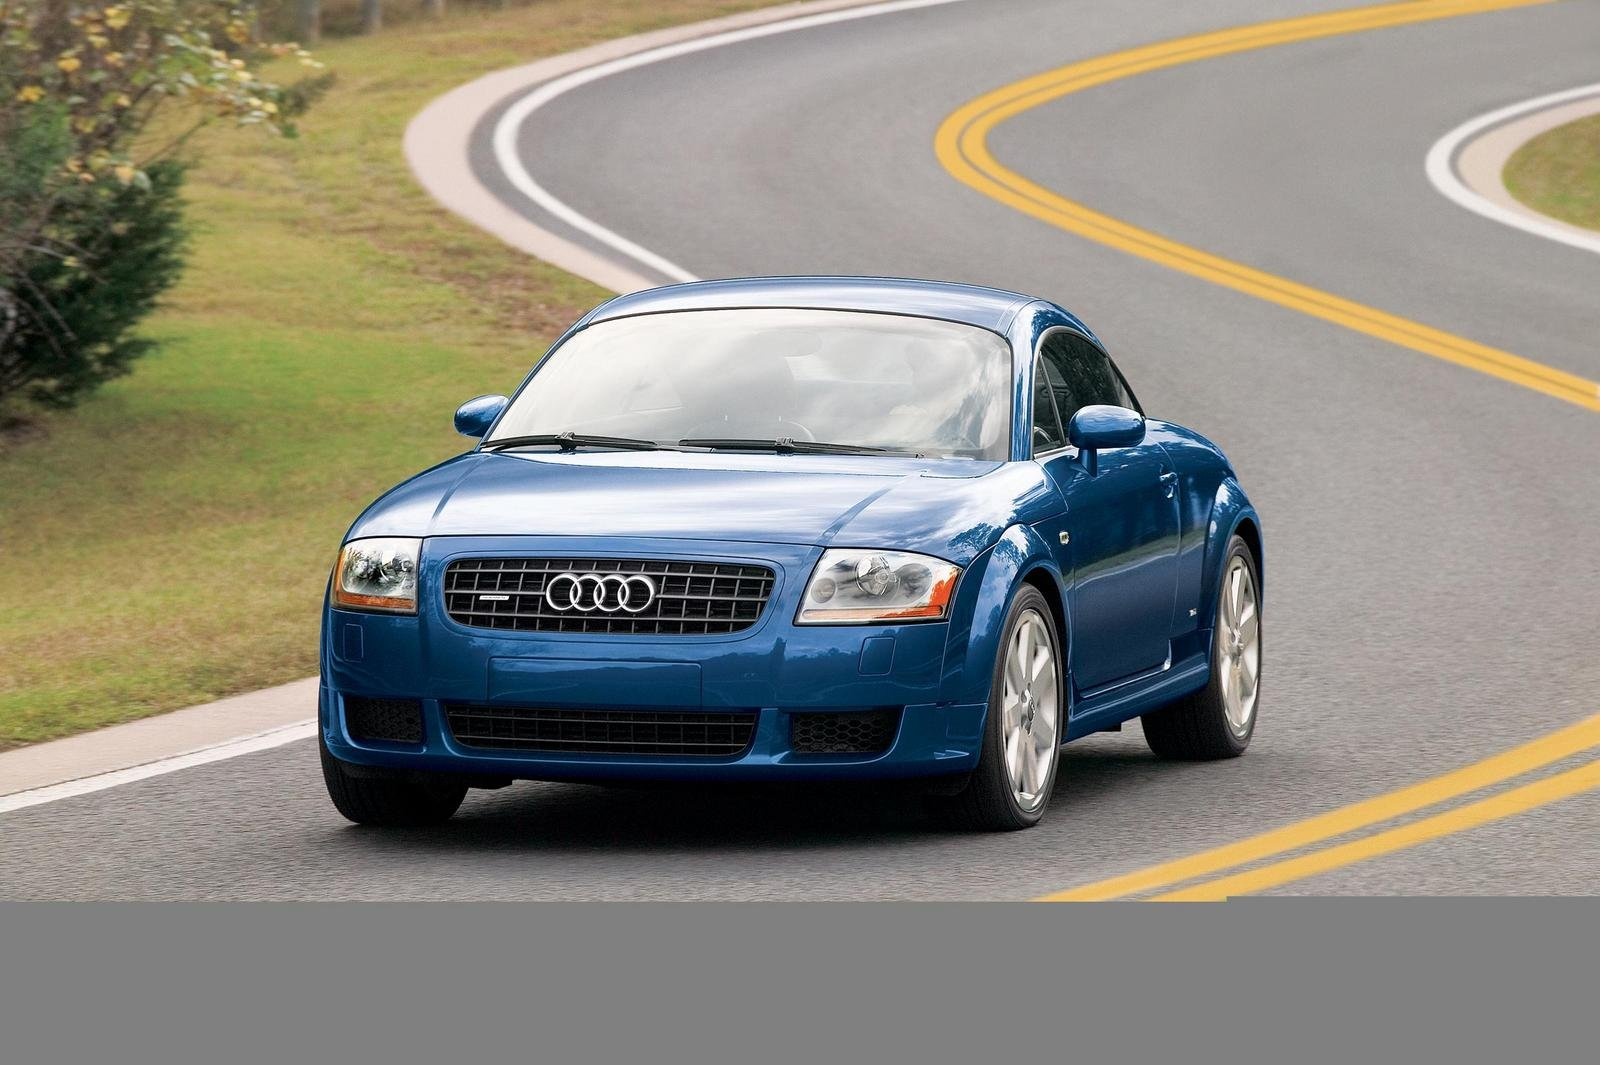 2006 audi tt special edition picture 45021 car review top speed. Black Bedroom Furniture Sets. Home Design Ideas